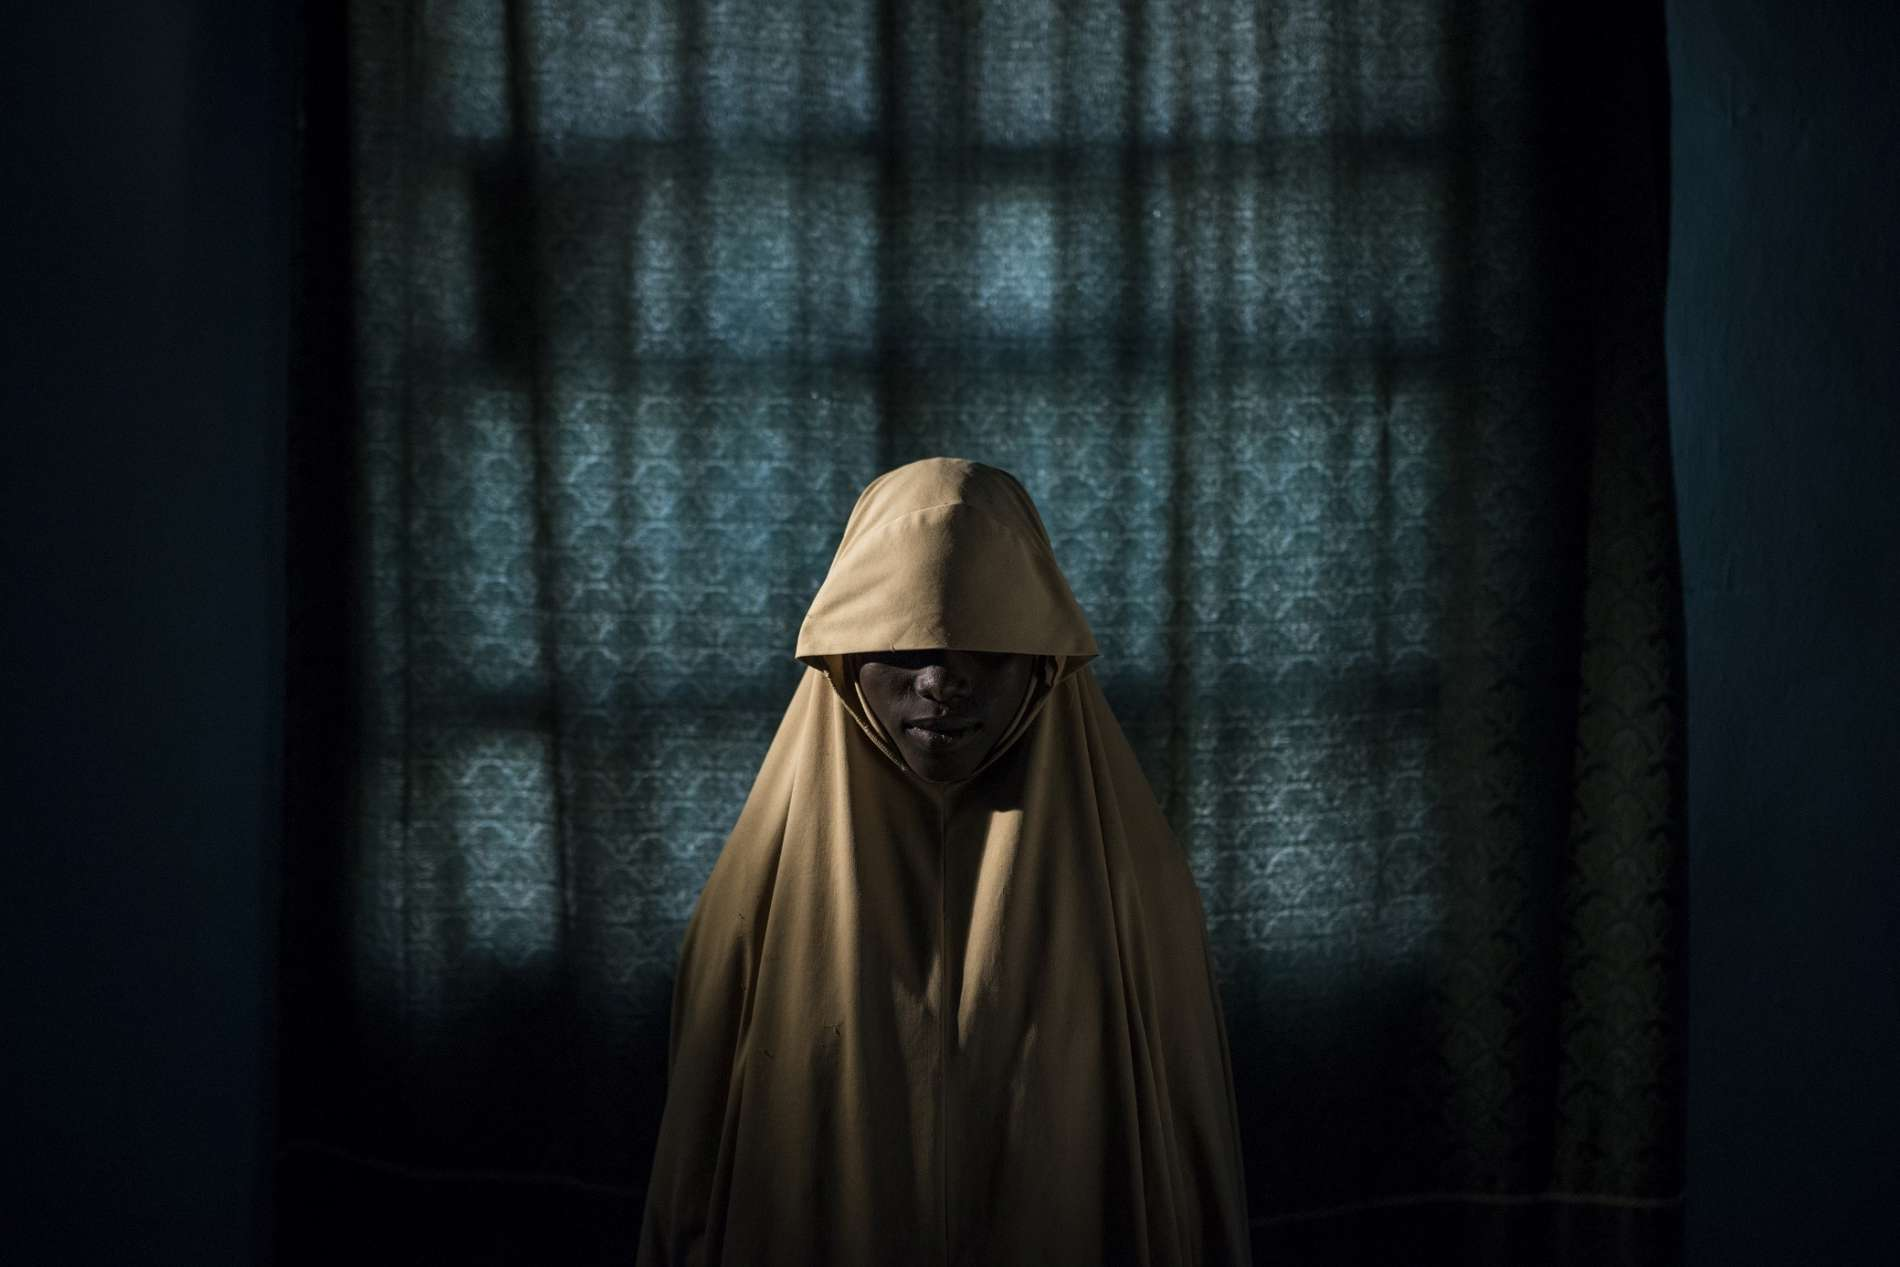 Boko Haram Strapped Suicide Bombs to Them. Somehow These Teenage Girls Survived. © Adam Ferguson